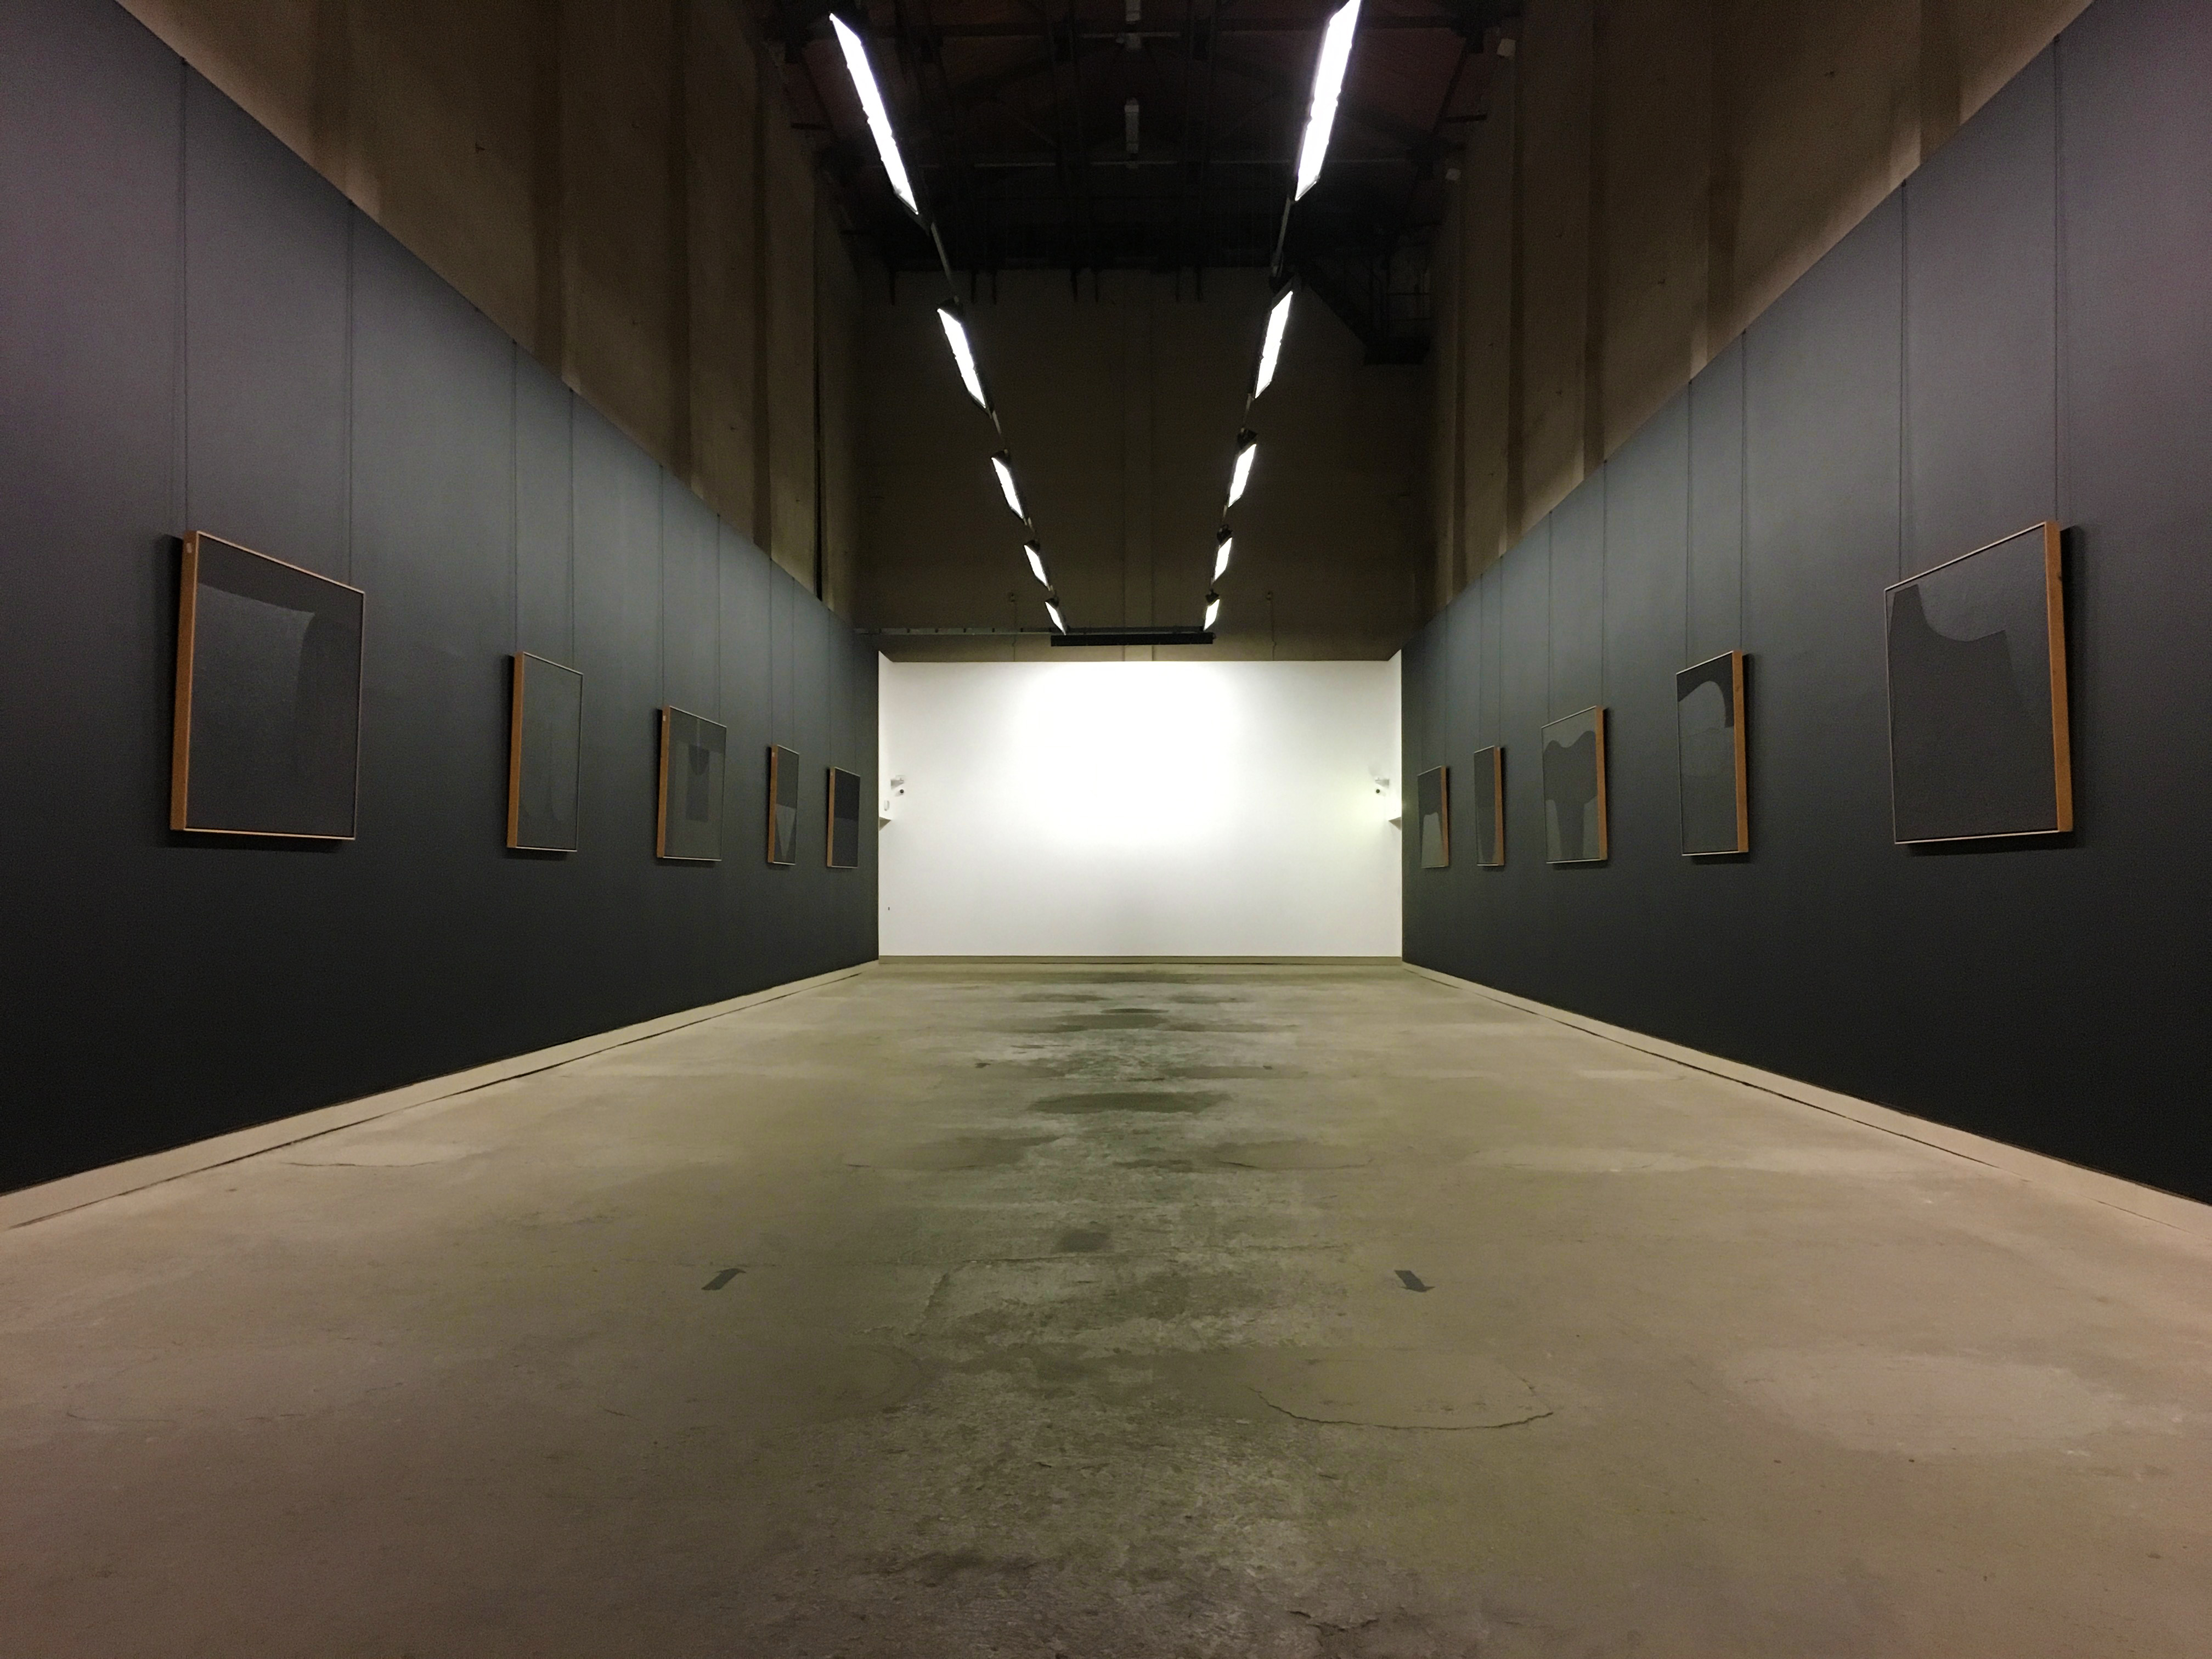 Black room with art by artist Alberto Burri